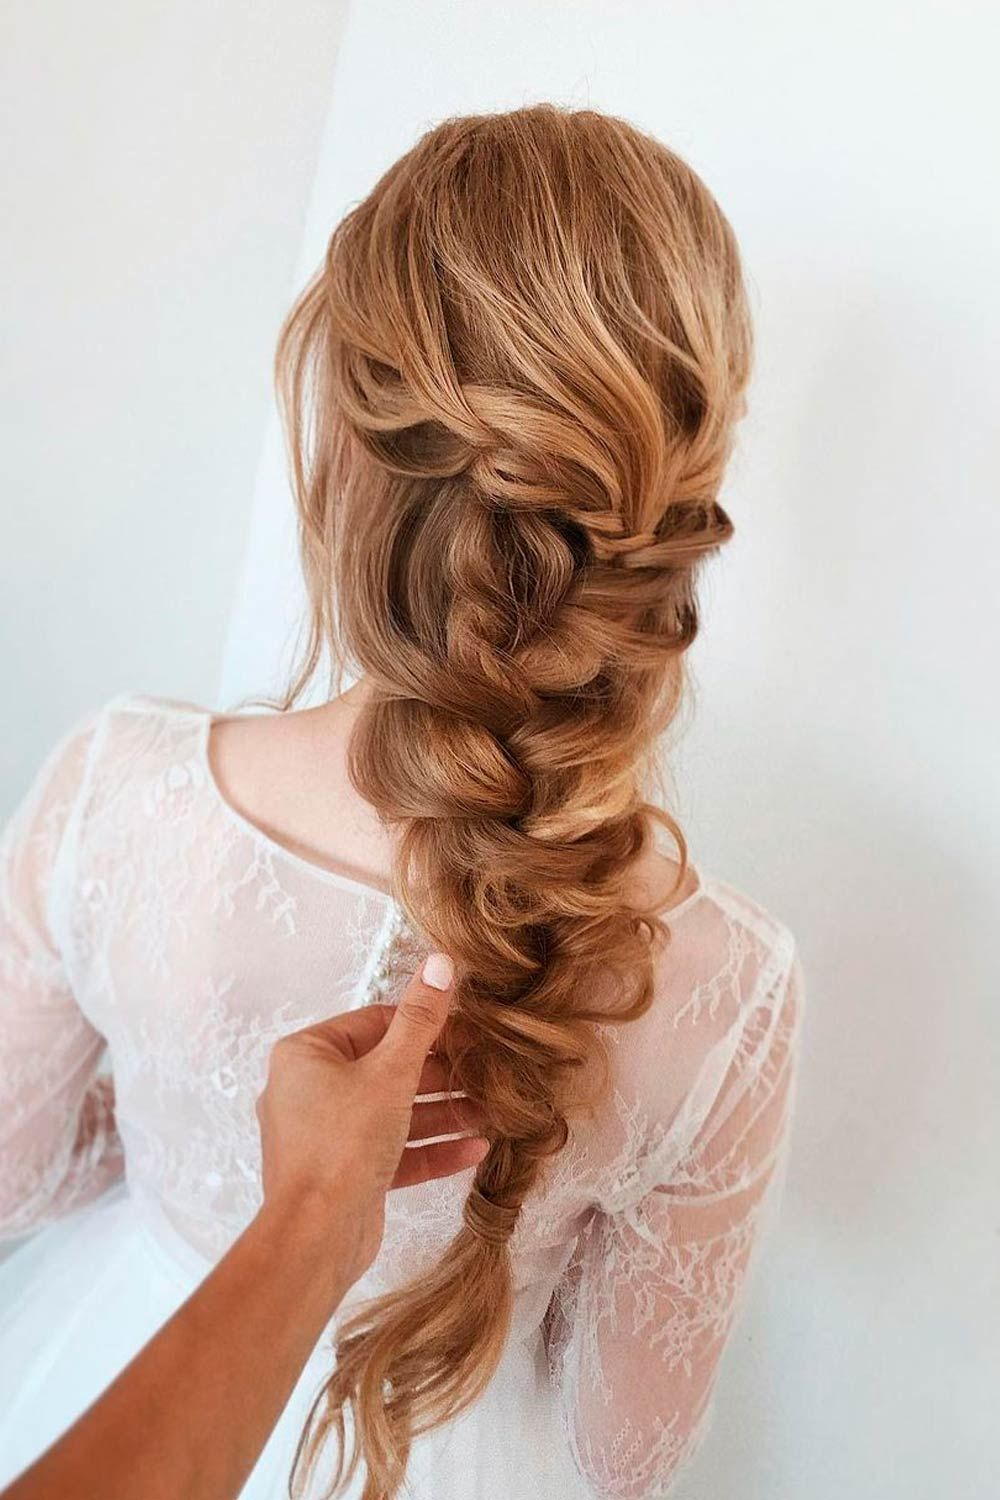 Long Hair With Braid Hairstyle